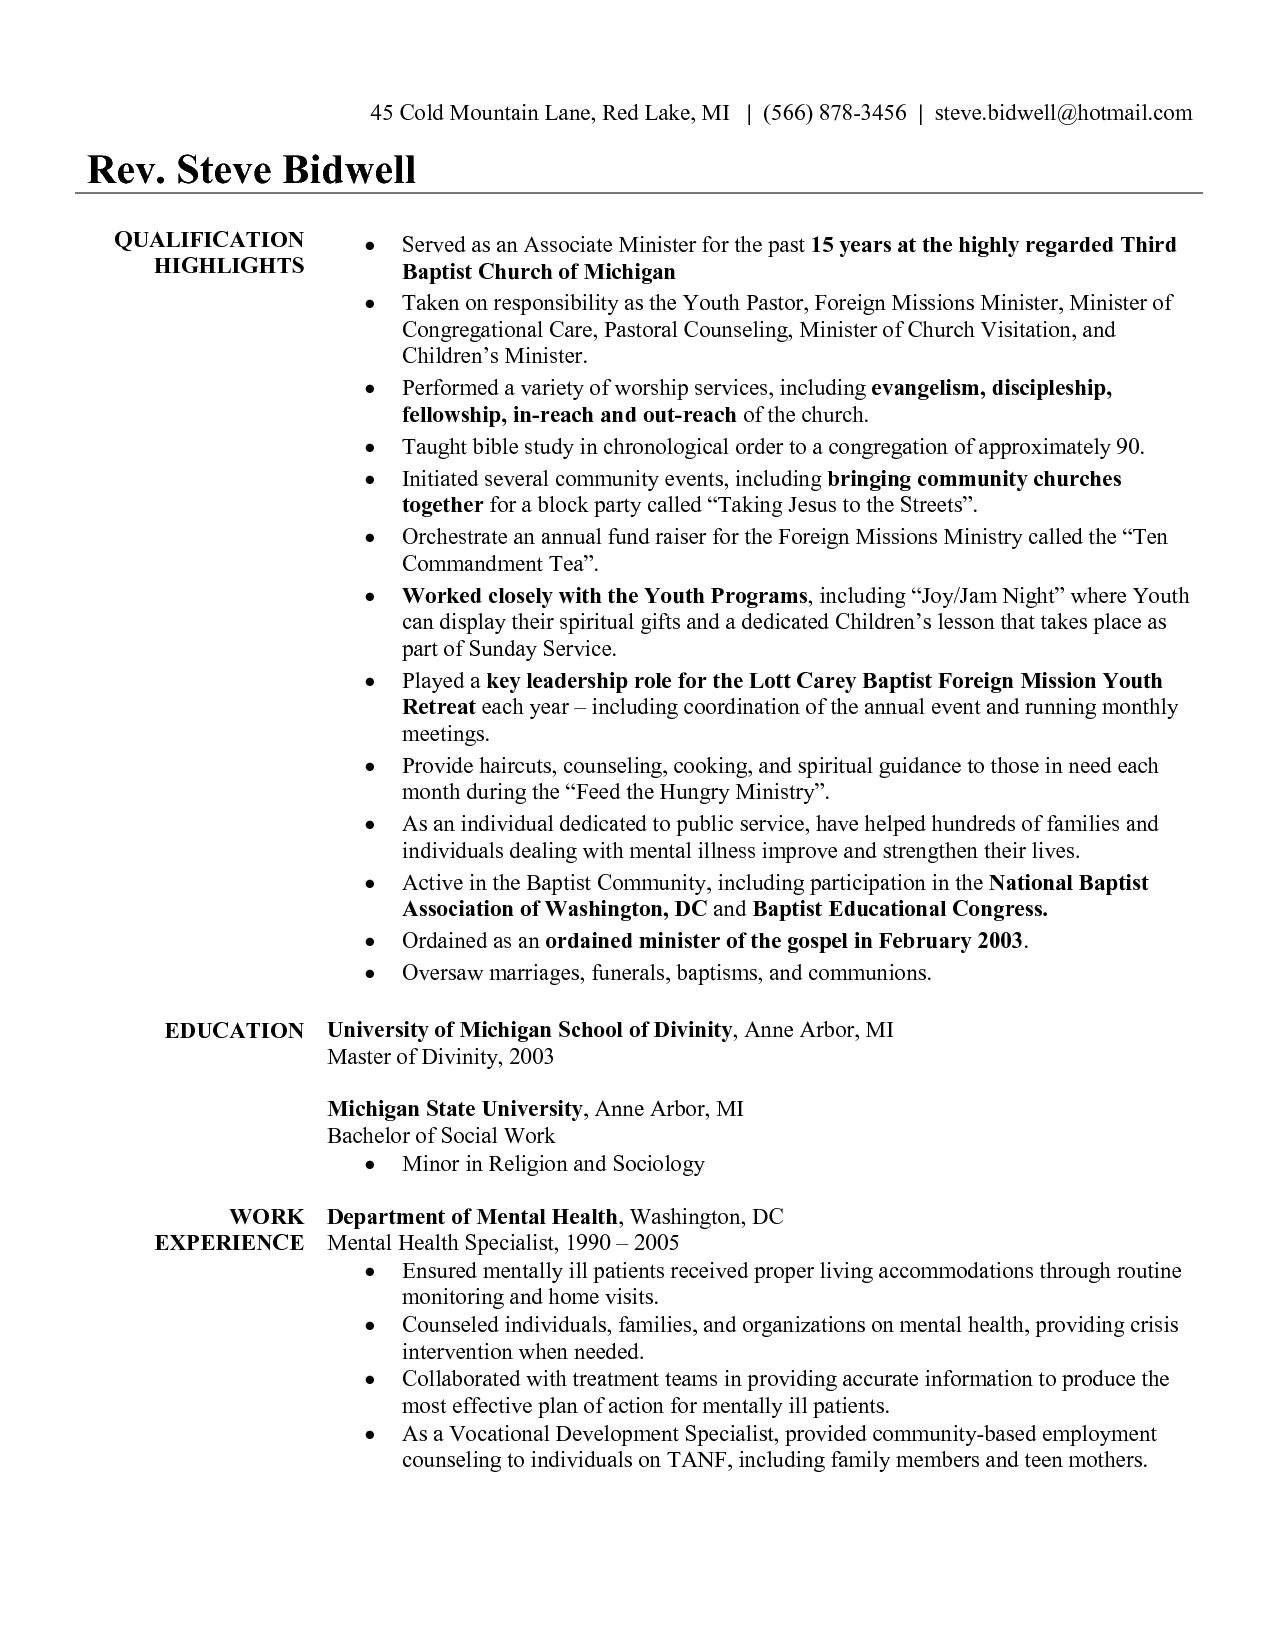 Pastor Resume Template - Youth Pastor Resume Awesome Pastor Resume Template Free Unique